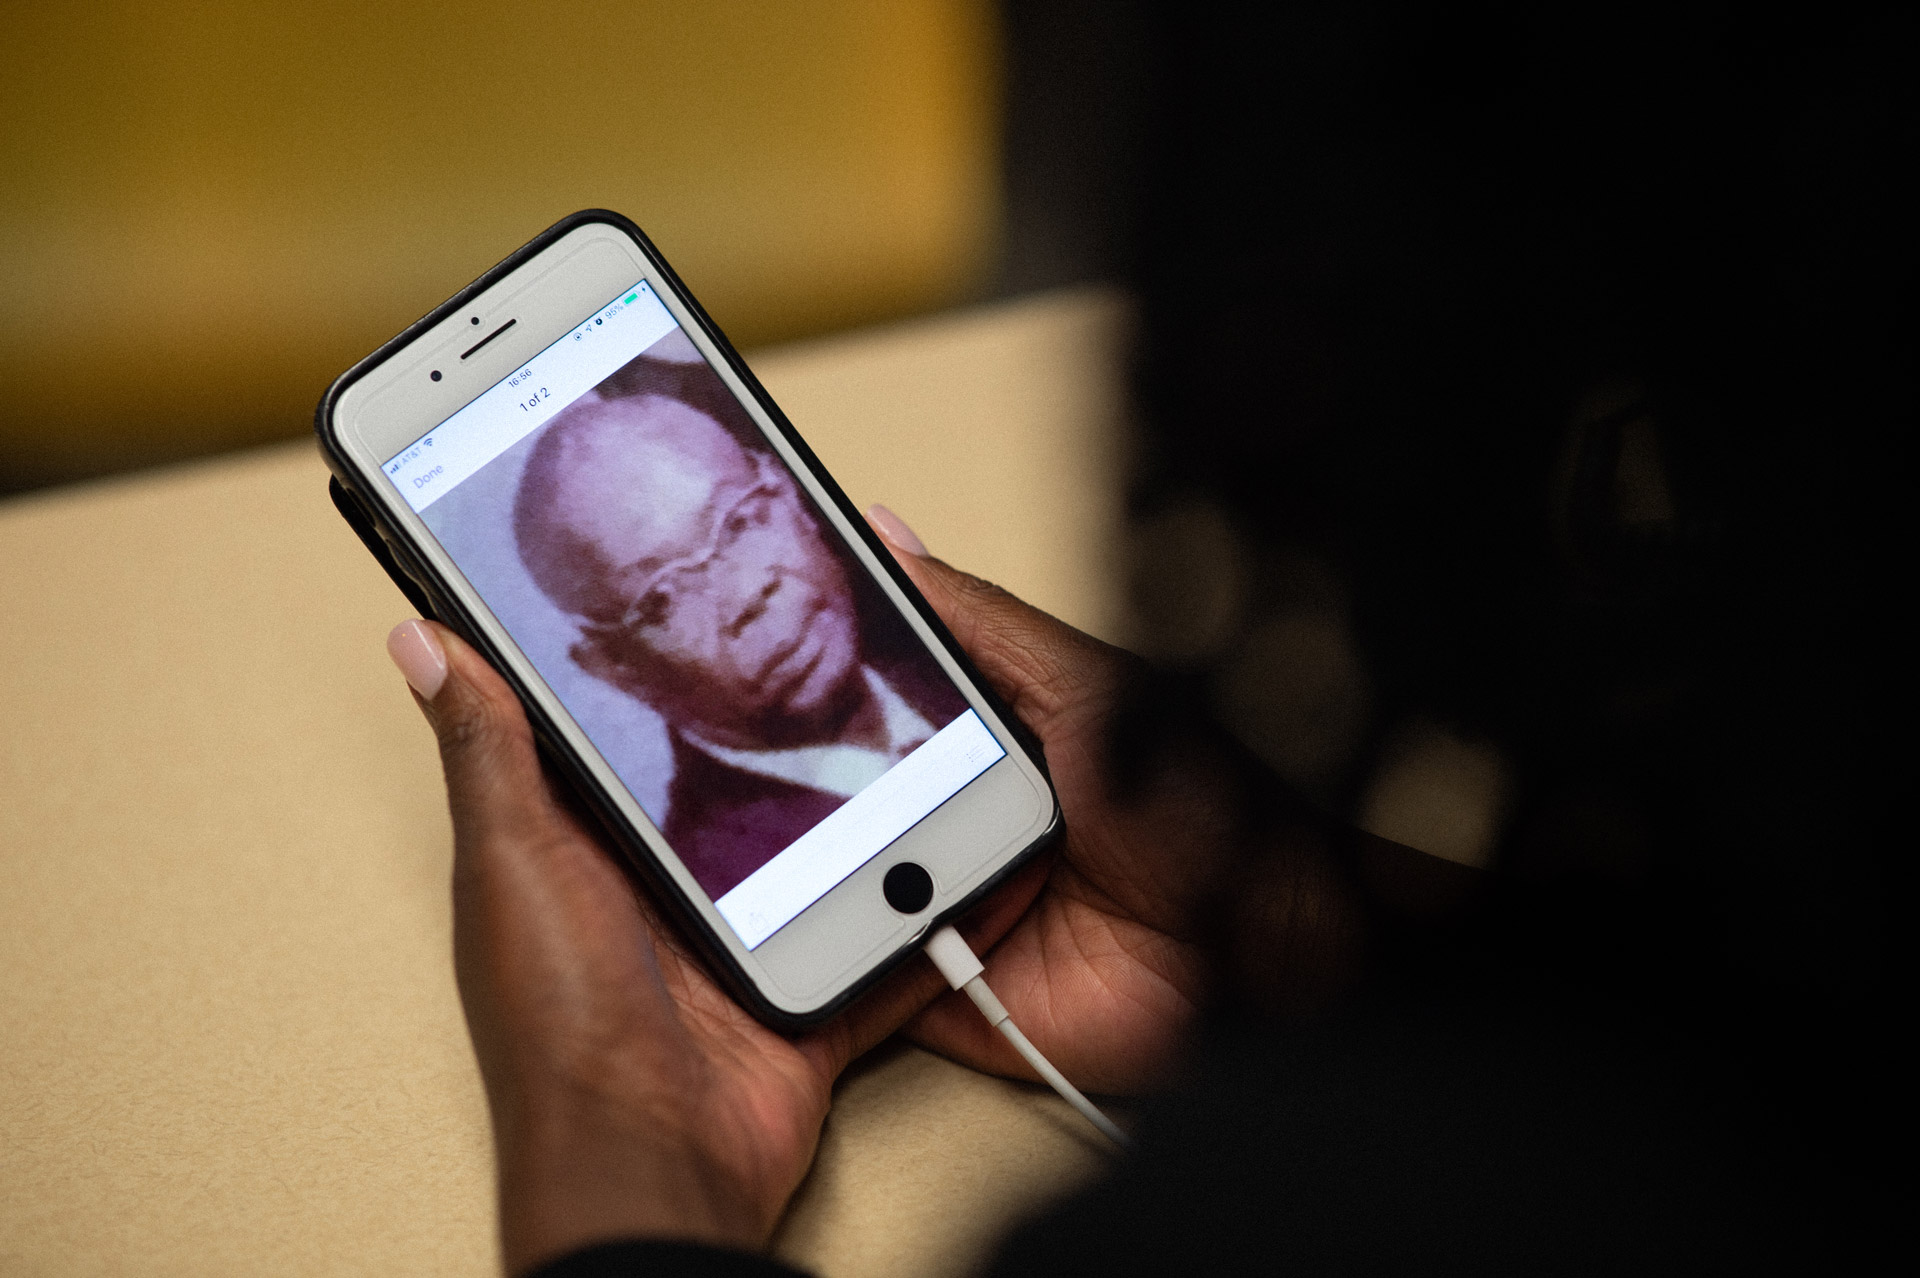 A photograph of Jitana's great-grandfather on her cellphone, who founded a nursing home in the 1950s.